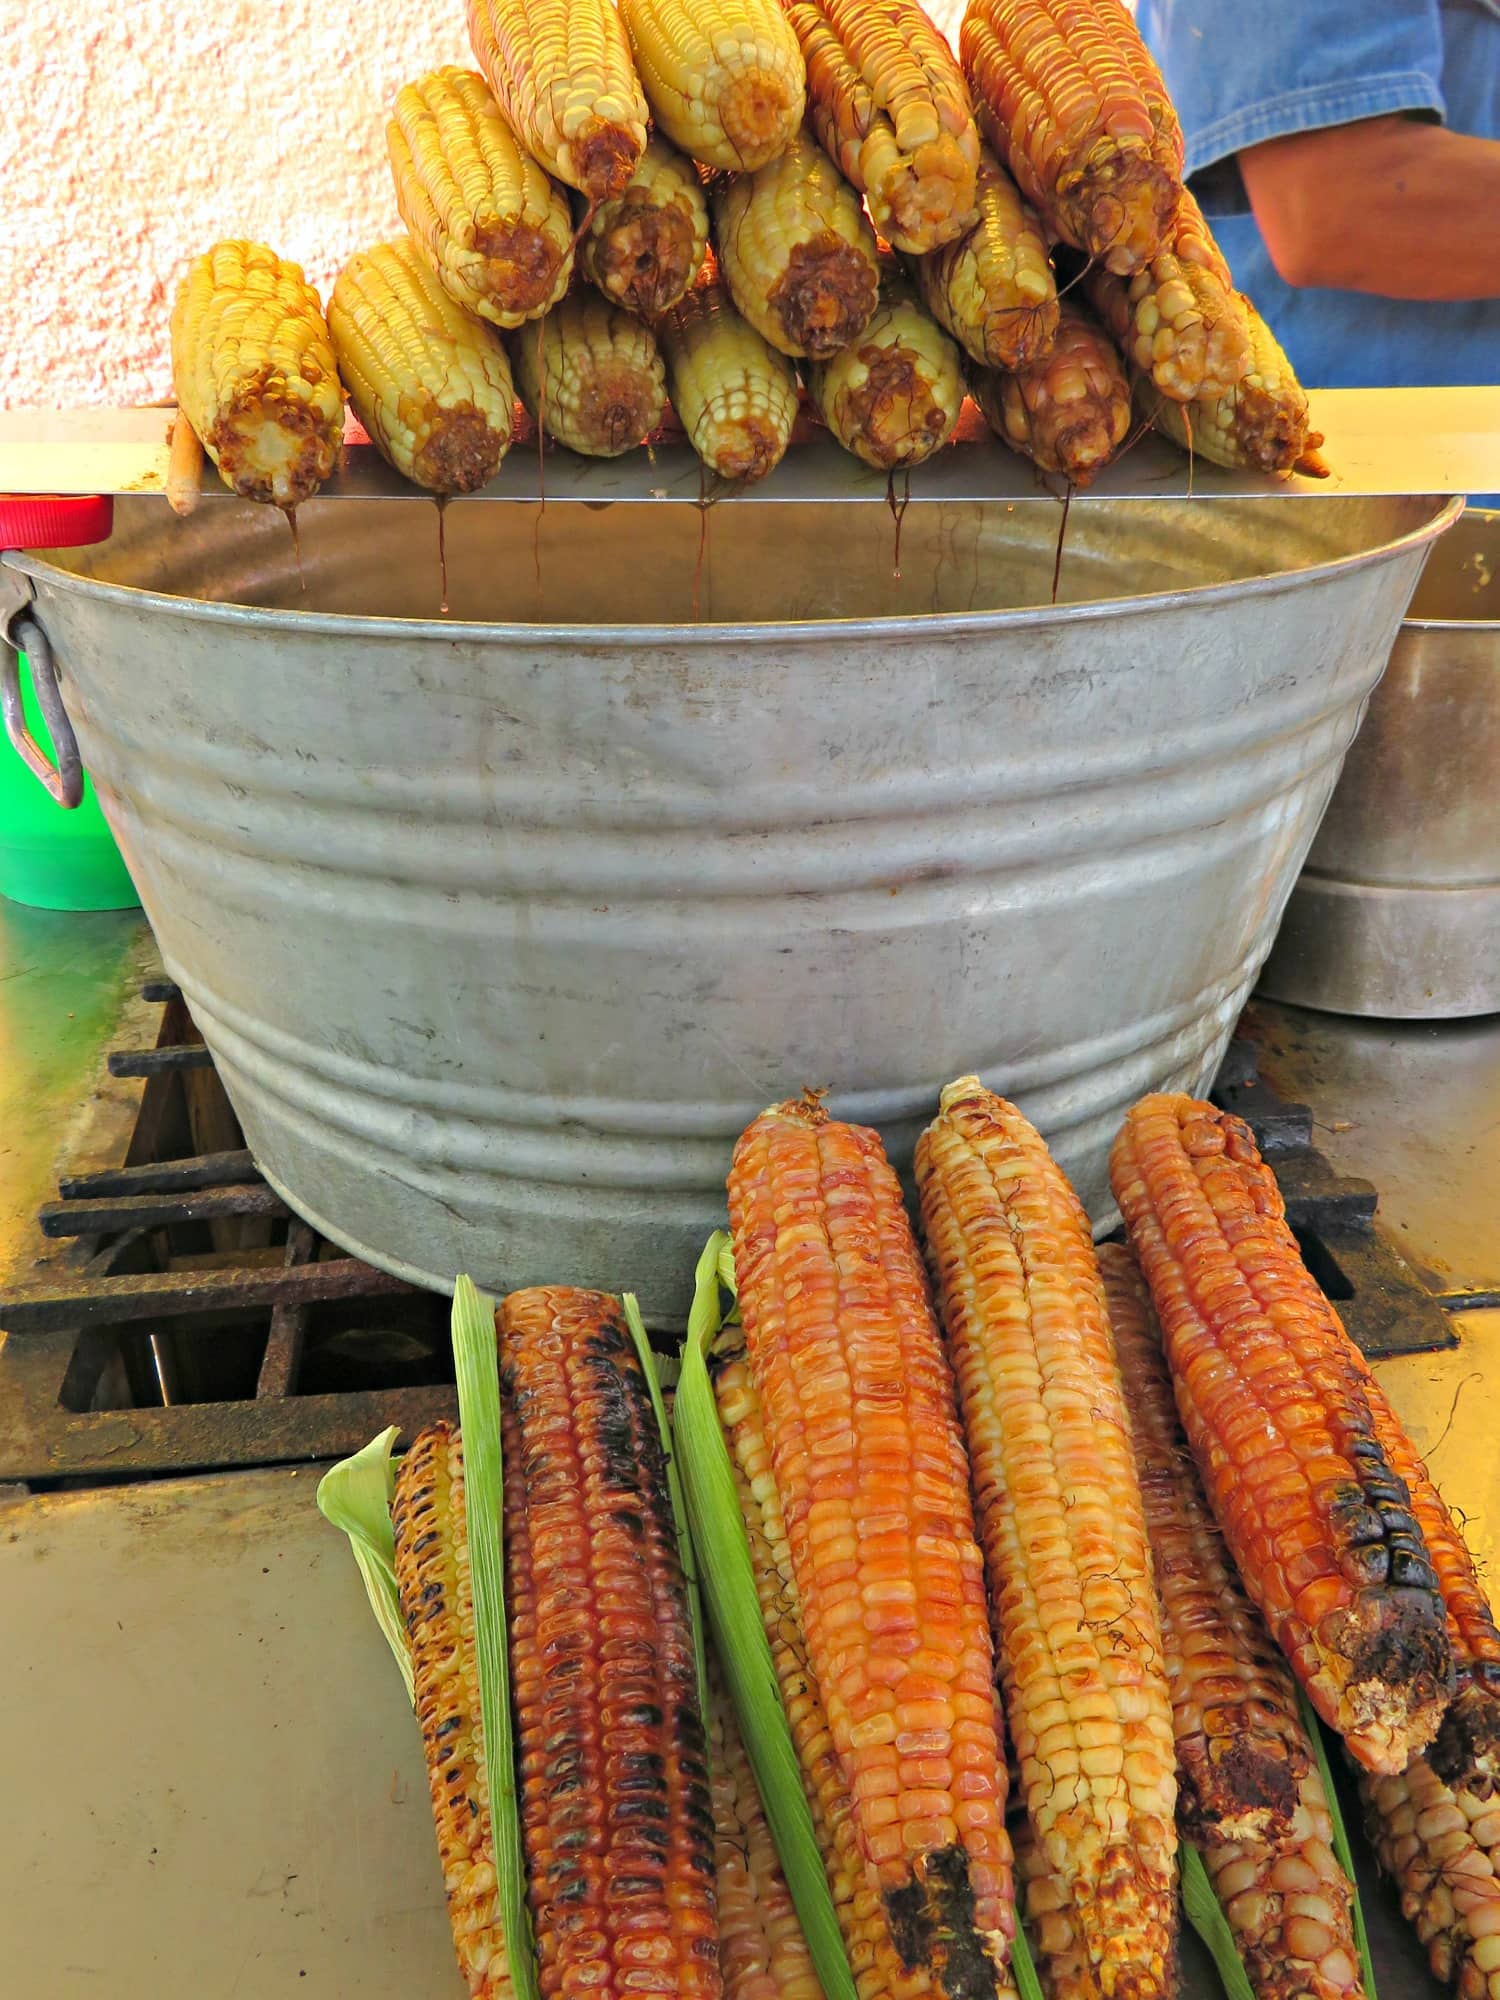 Street corn for sale in San Miguel de Allende